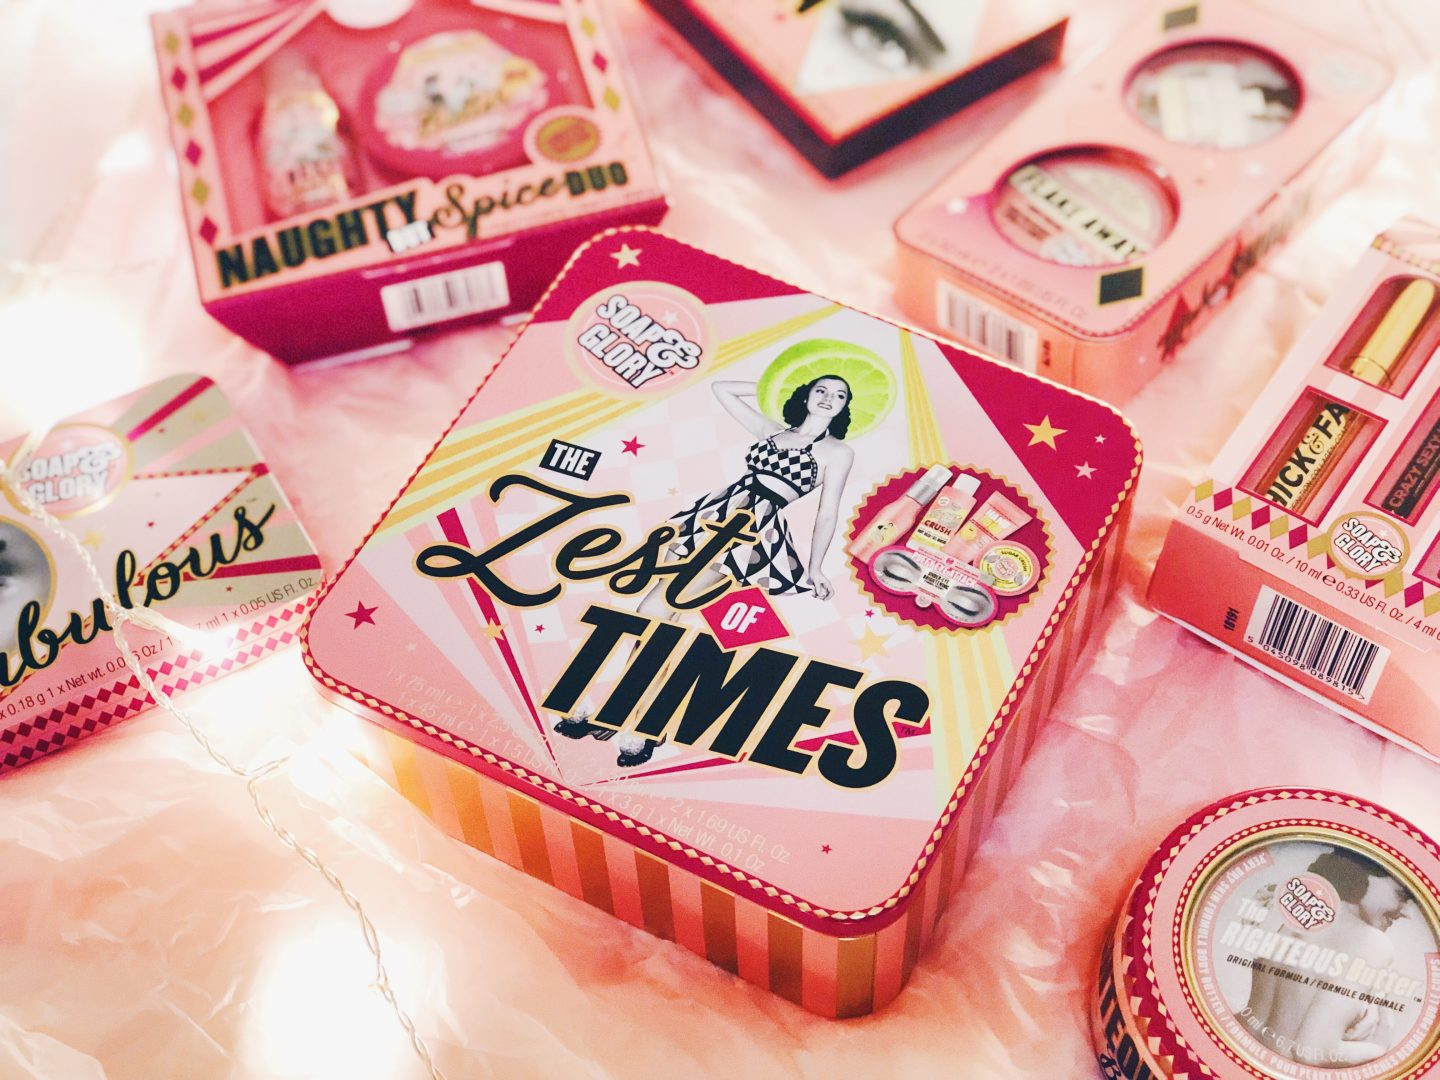 soap and glory 3 for 2 in boots christmas gift collection